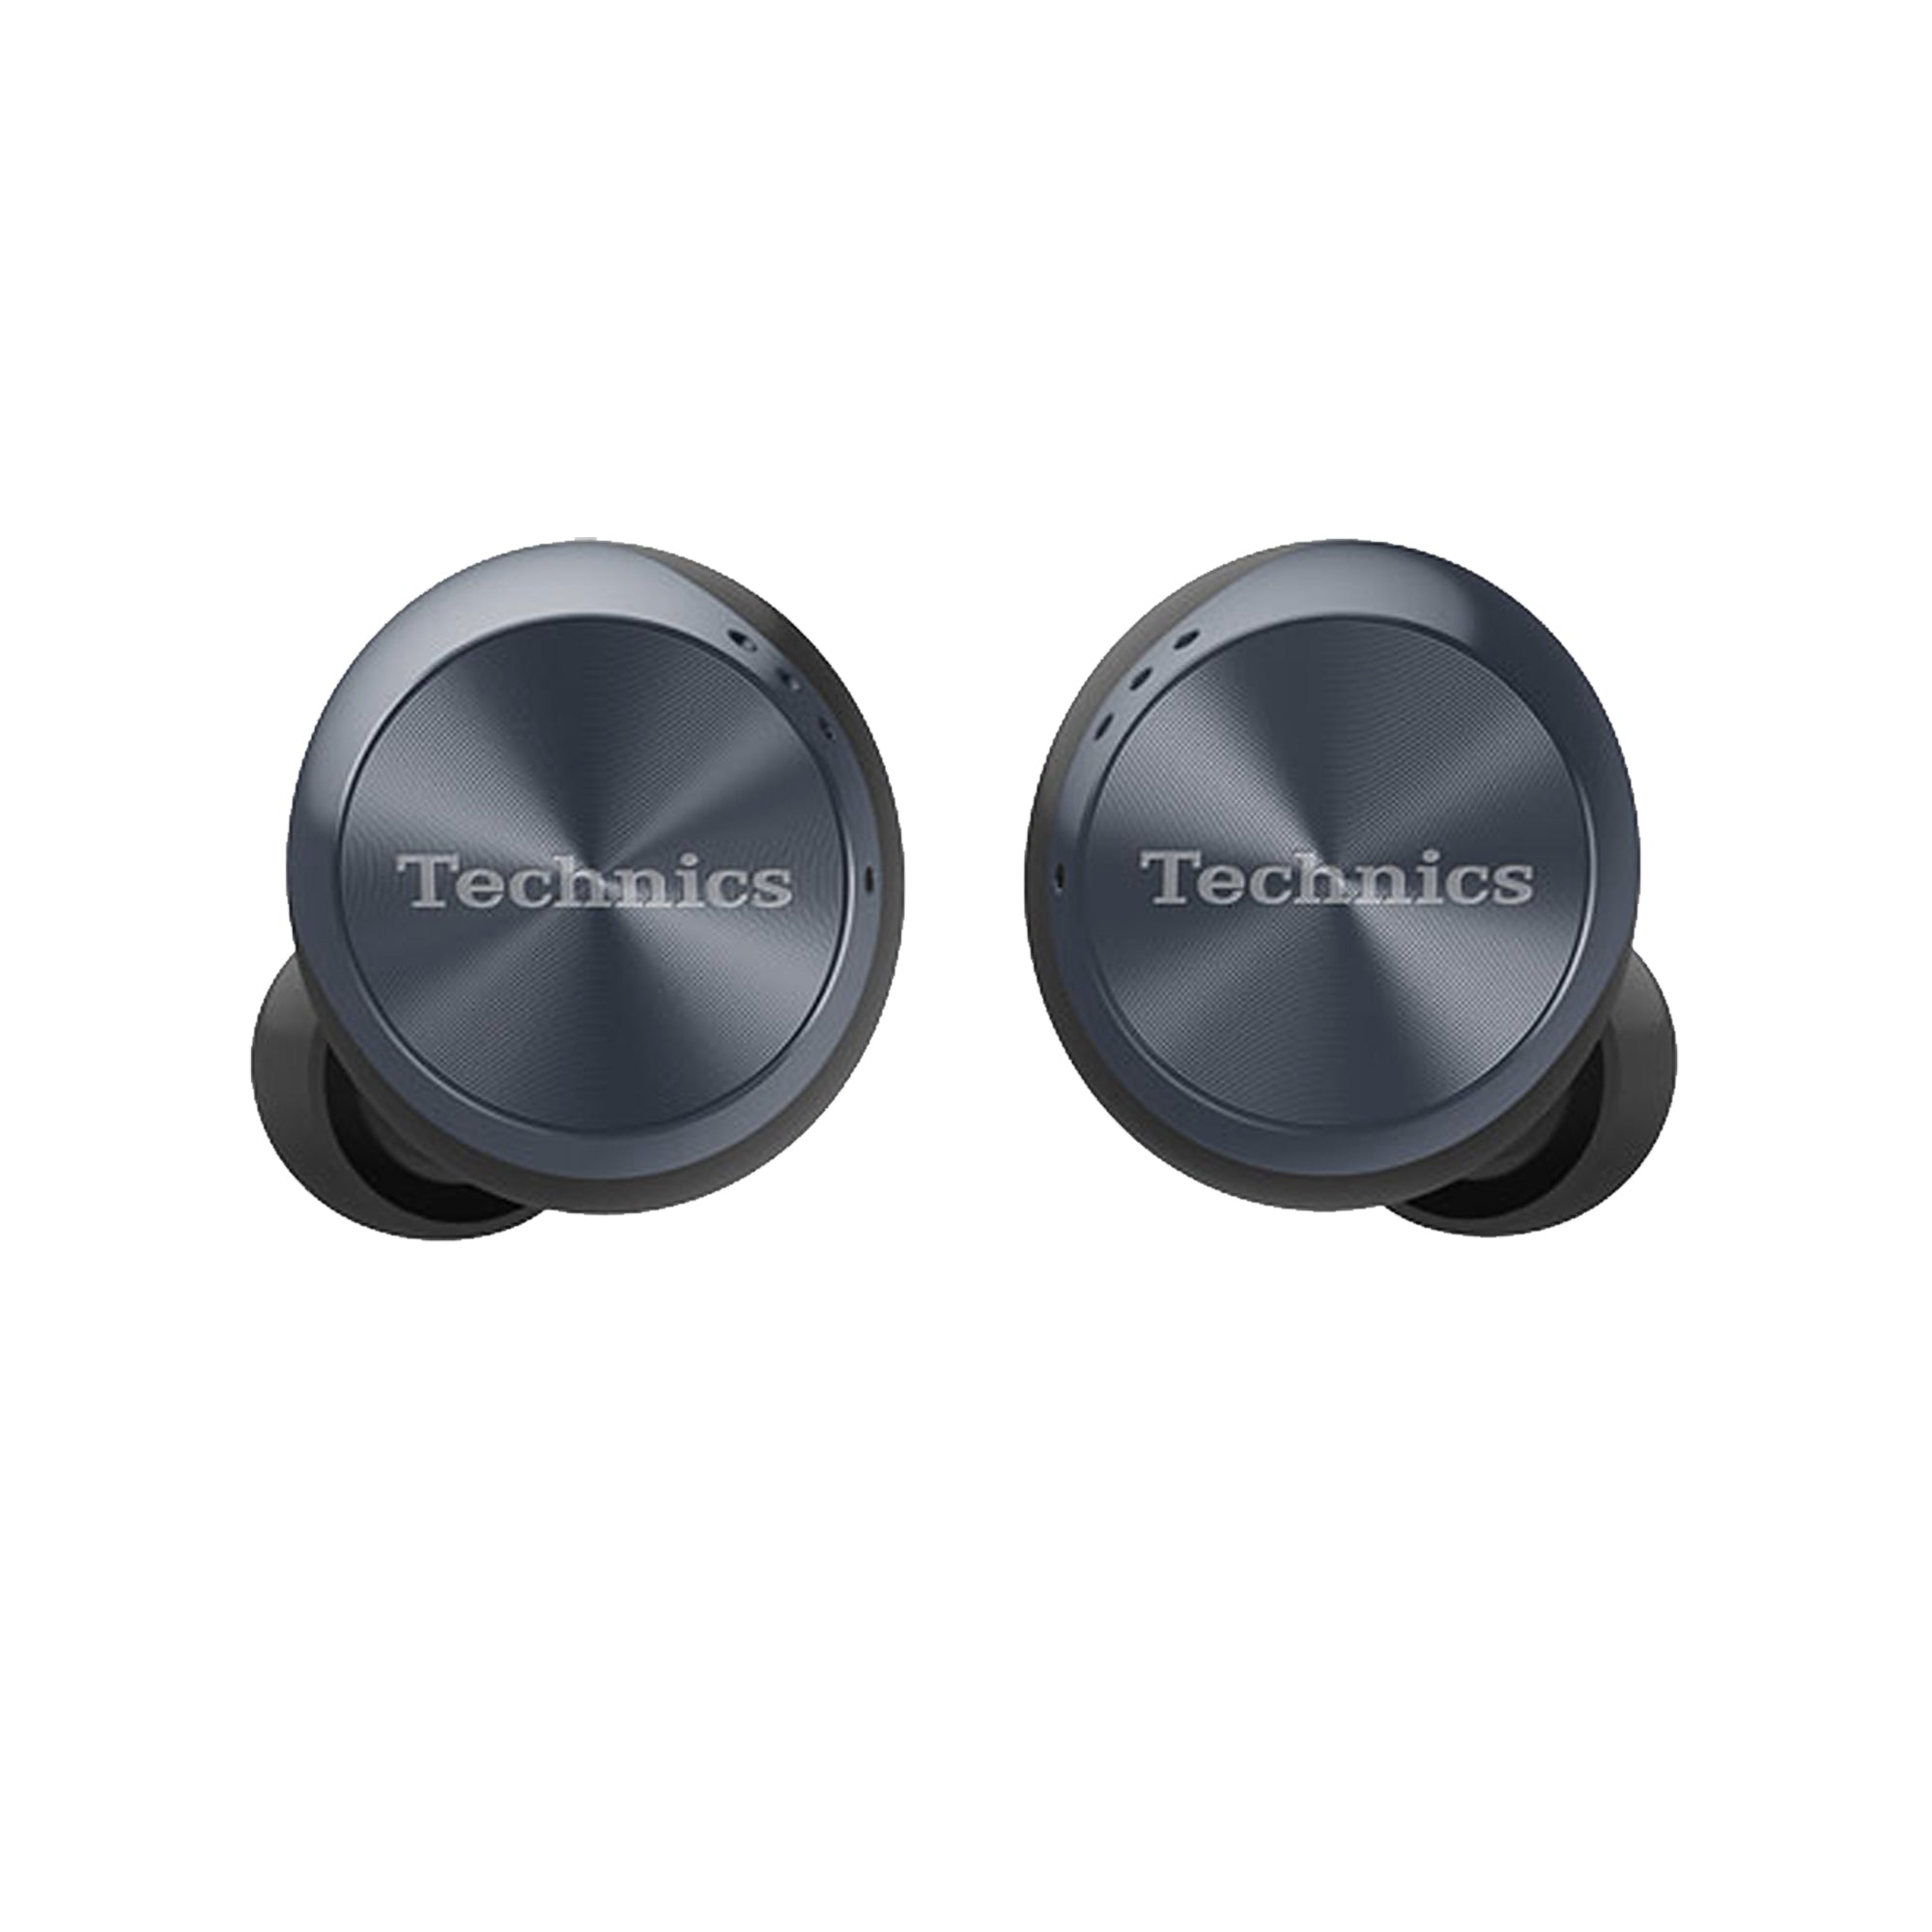 Technics EAH-AZ70W True Wireless Earphones